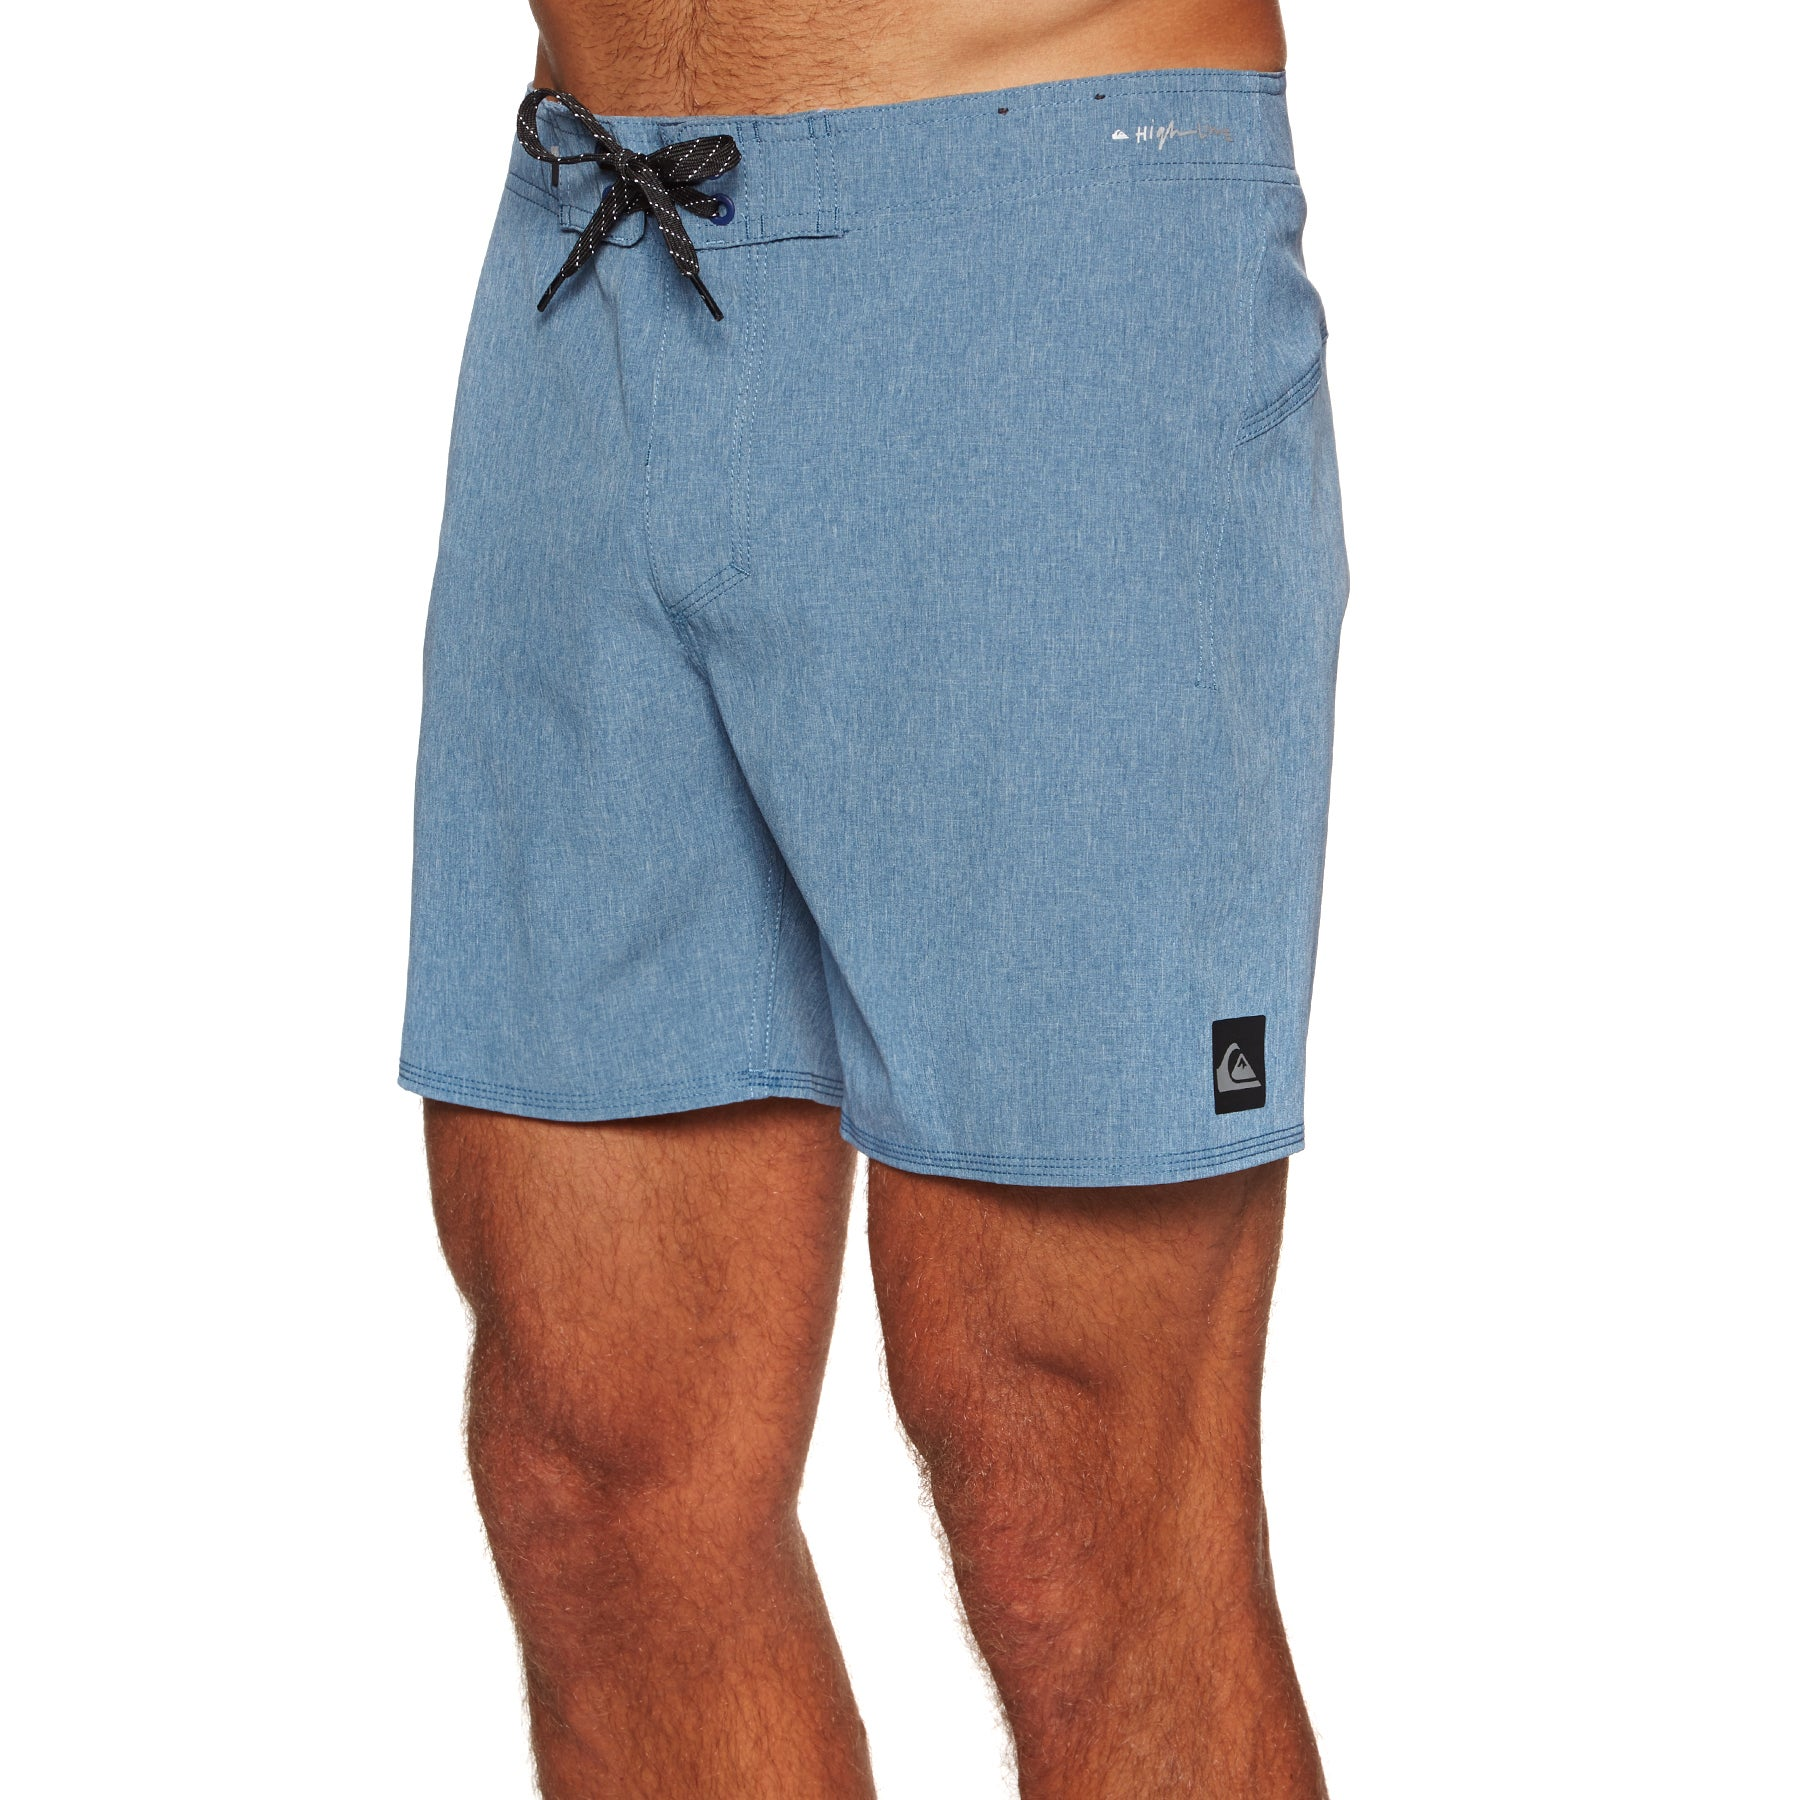 Surfdome ShortsFree Available Board At Delivery Mens LqSzGMUpjV